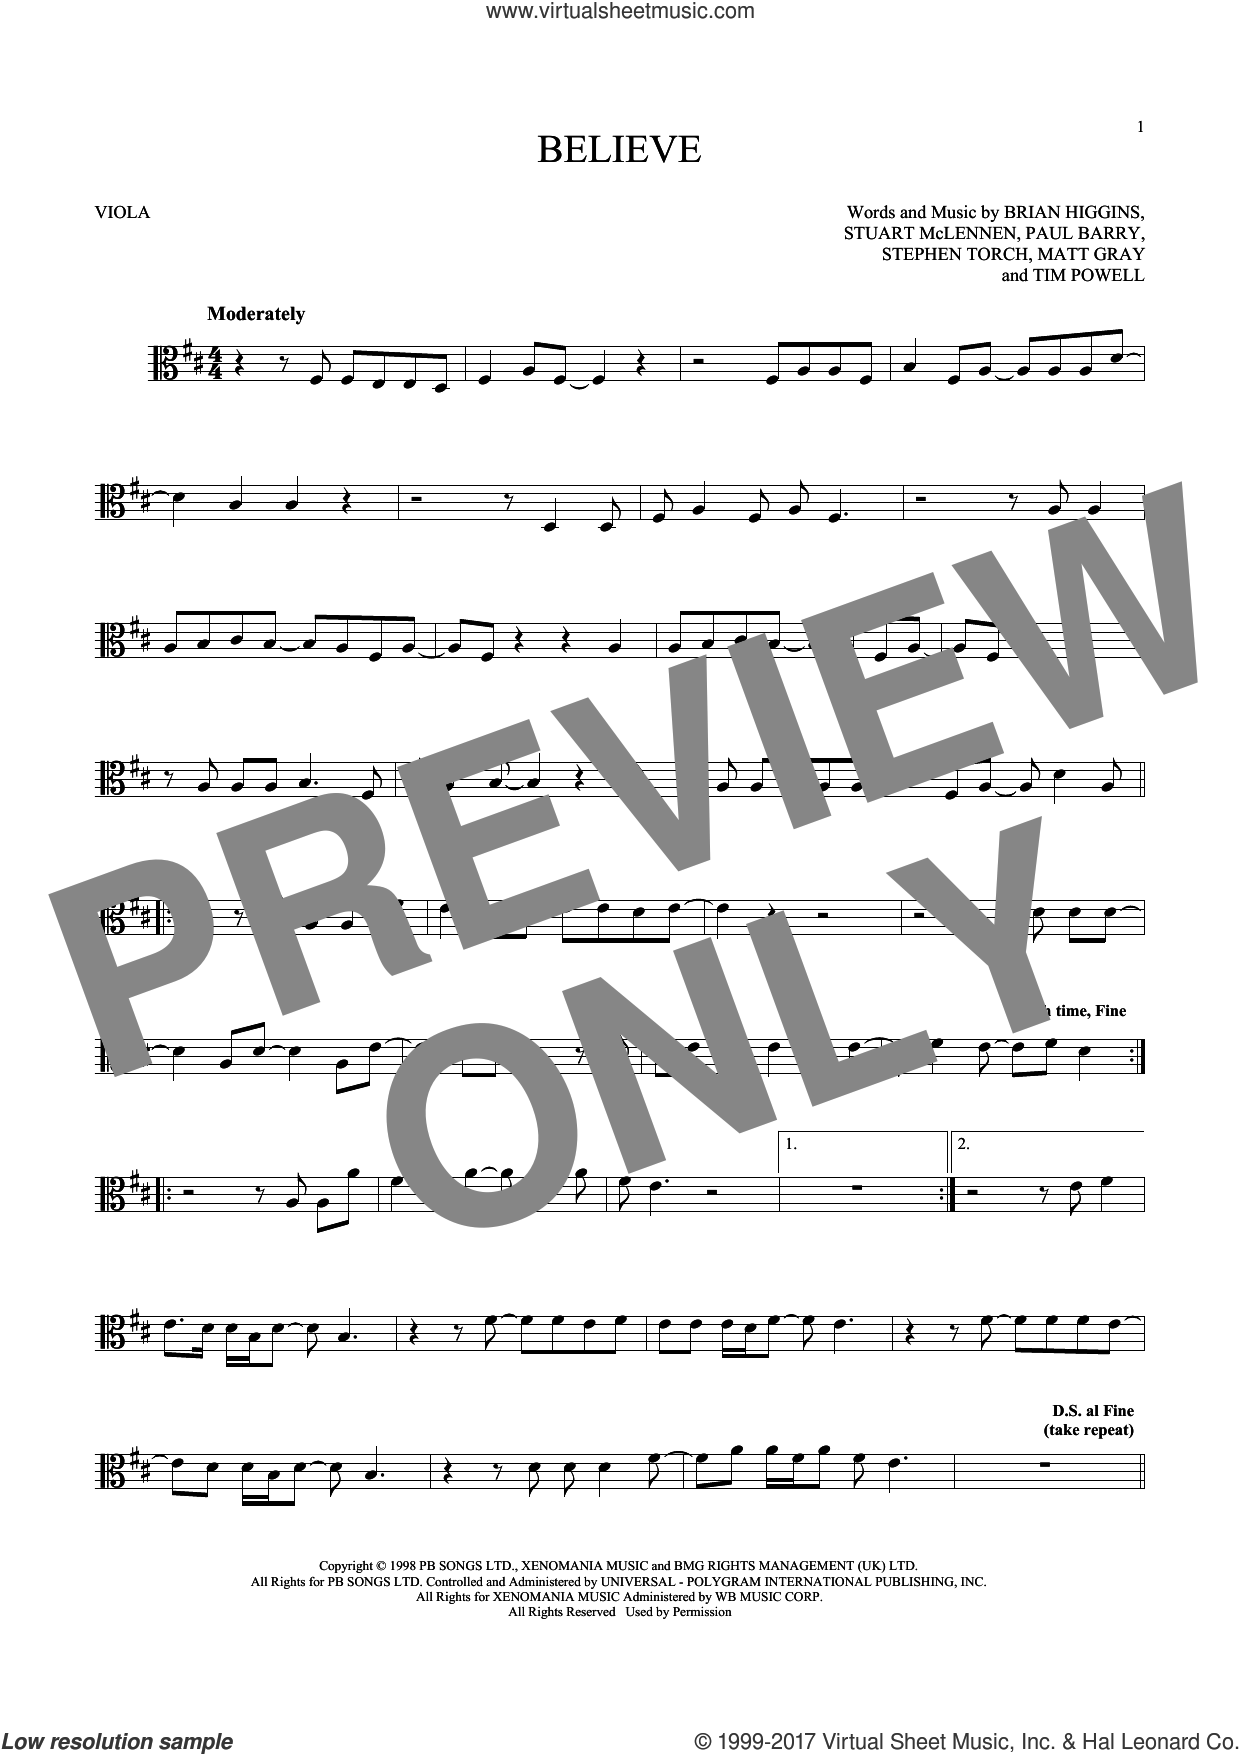 Believe sheet music for viola solo by Cher, Brian Higgins, Matt Gray, Paul Barry, Stephen Torch, Stuart McLennen and Timothy Powell, intermediate skill level